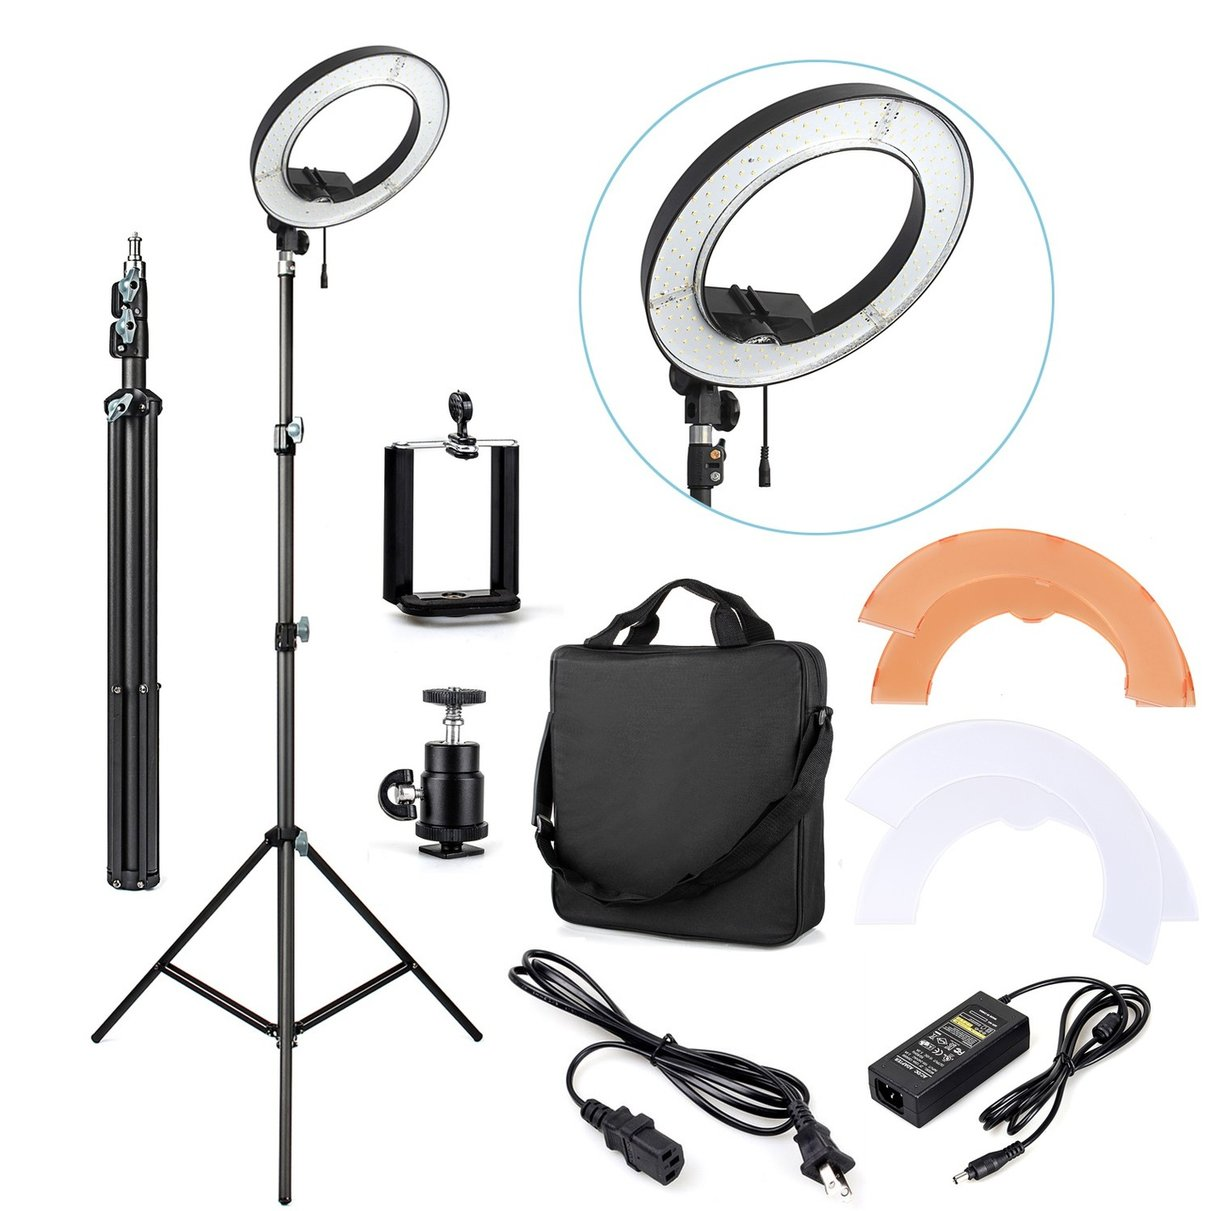 ES180 180 LED 13 Stepless Adjustable Ring Light Camera Photo Video Port + Light Stand + Phone Clamp + Tripod Head + carry bag